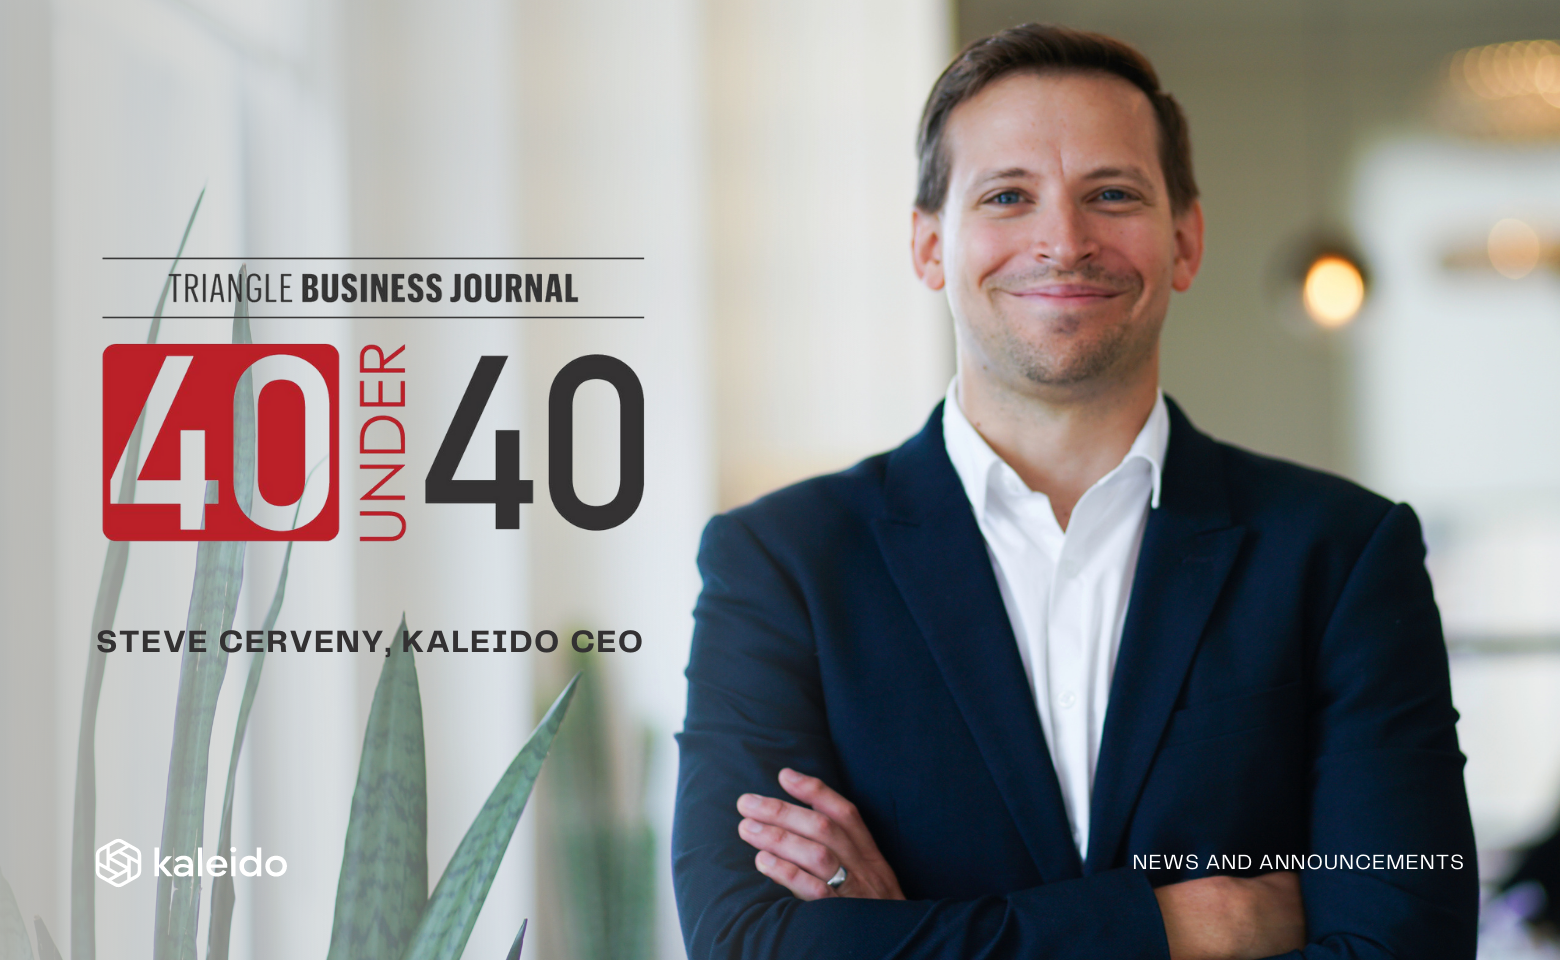 Kaleido's Steve Cerveny Receives Triangle Business Journal's 40 Under 40 Leadership Award